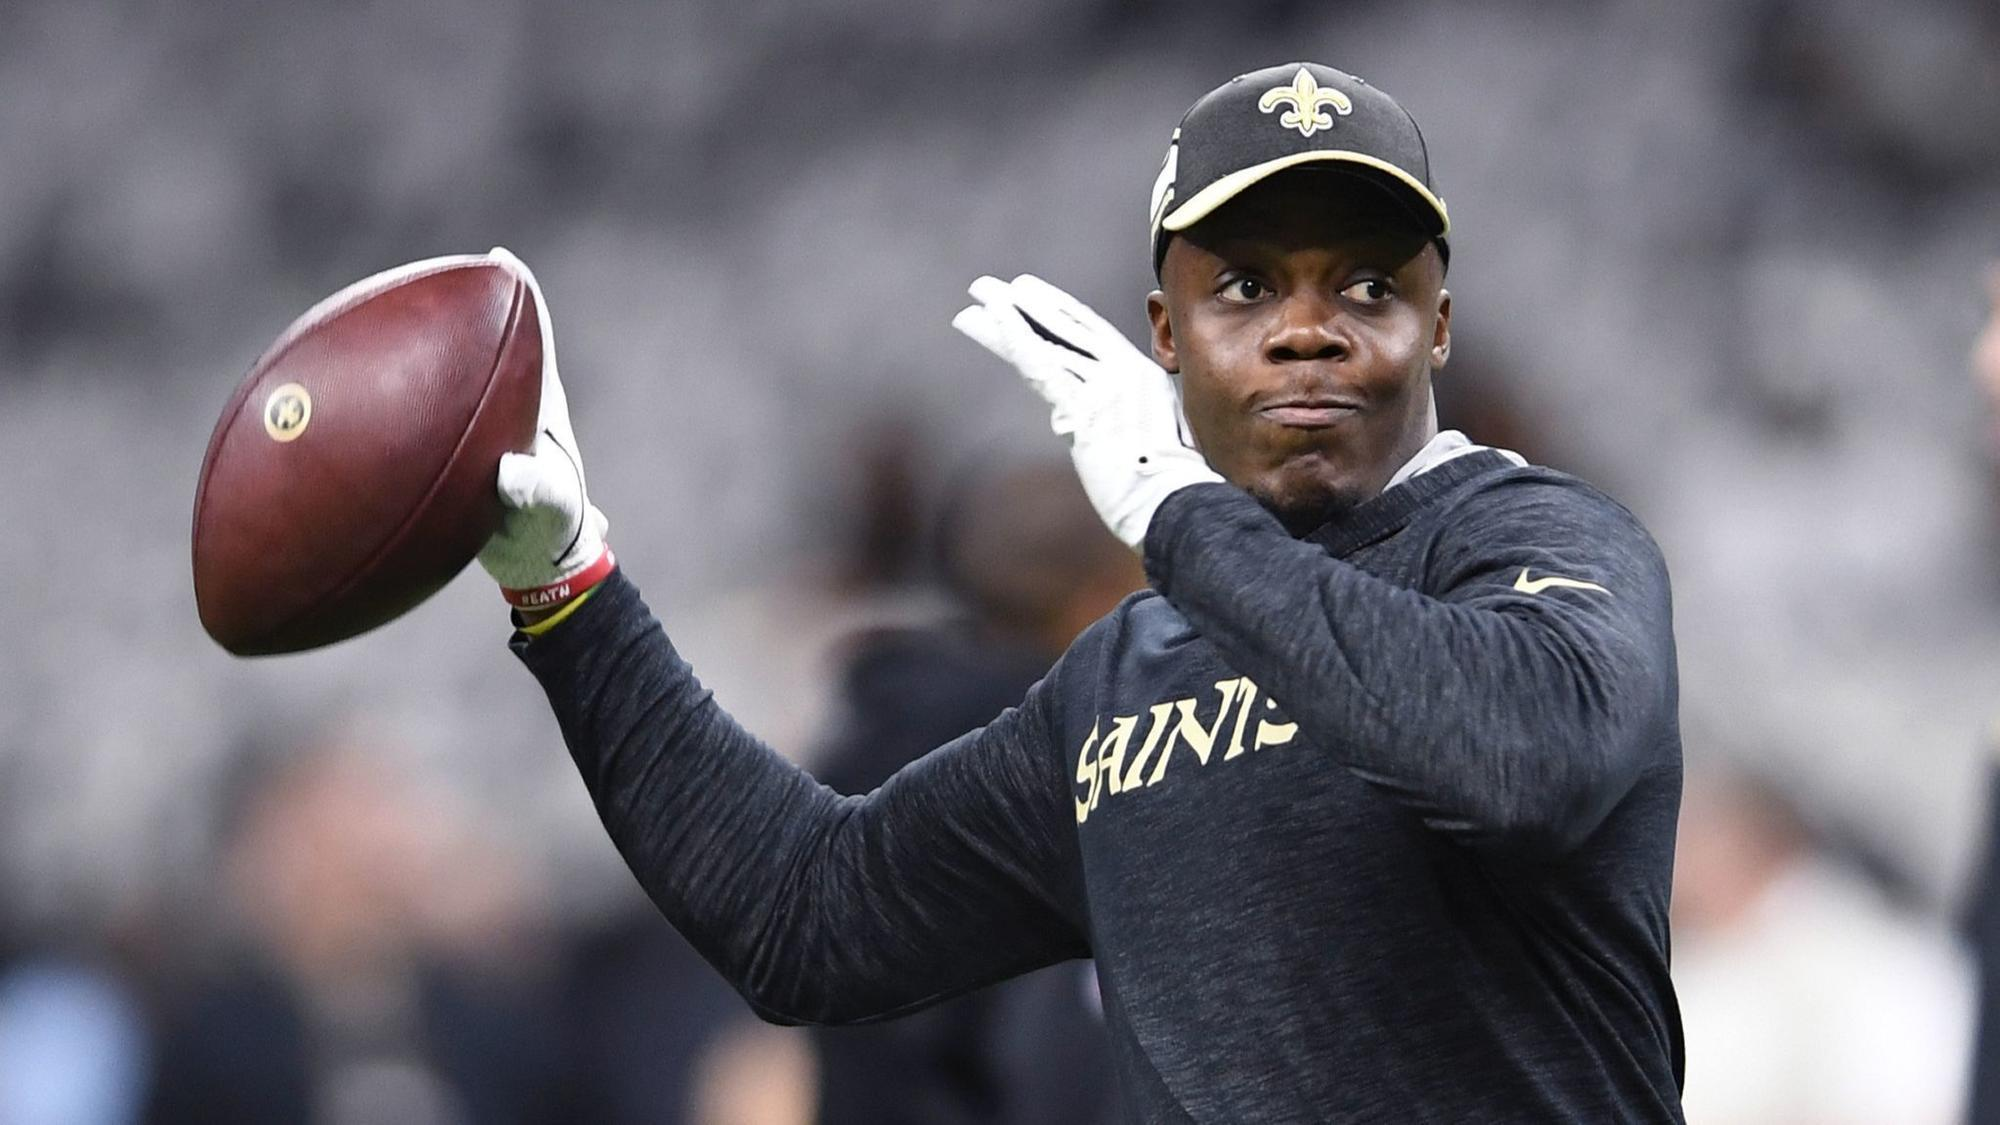 Teddy Bridgewater says picking Saints over Dolphins put him in 'right situation to succeed'